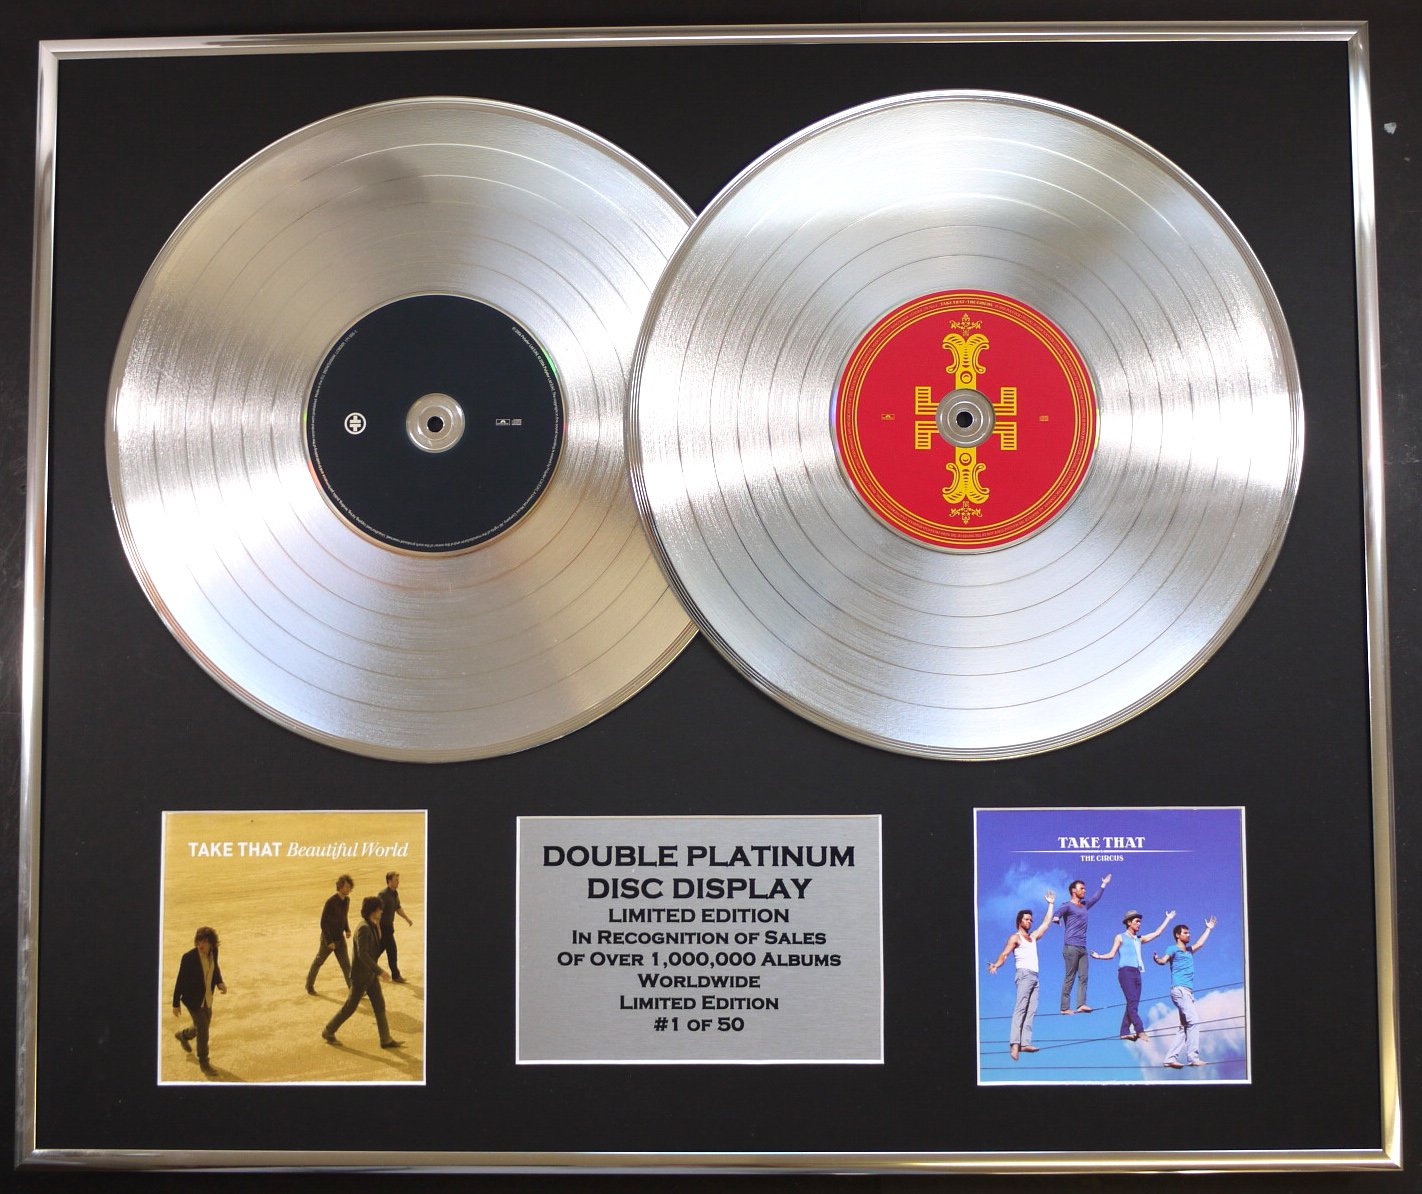 Home Accessories TAKE THAT/DOUBLE CD PLATINUM DISC RECORD